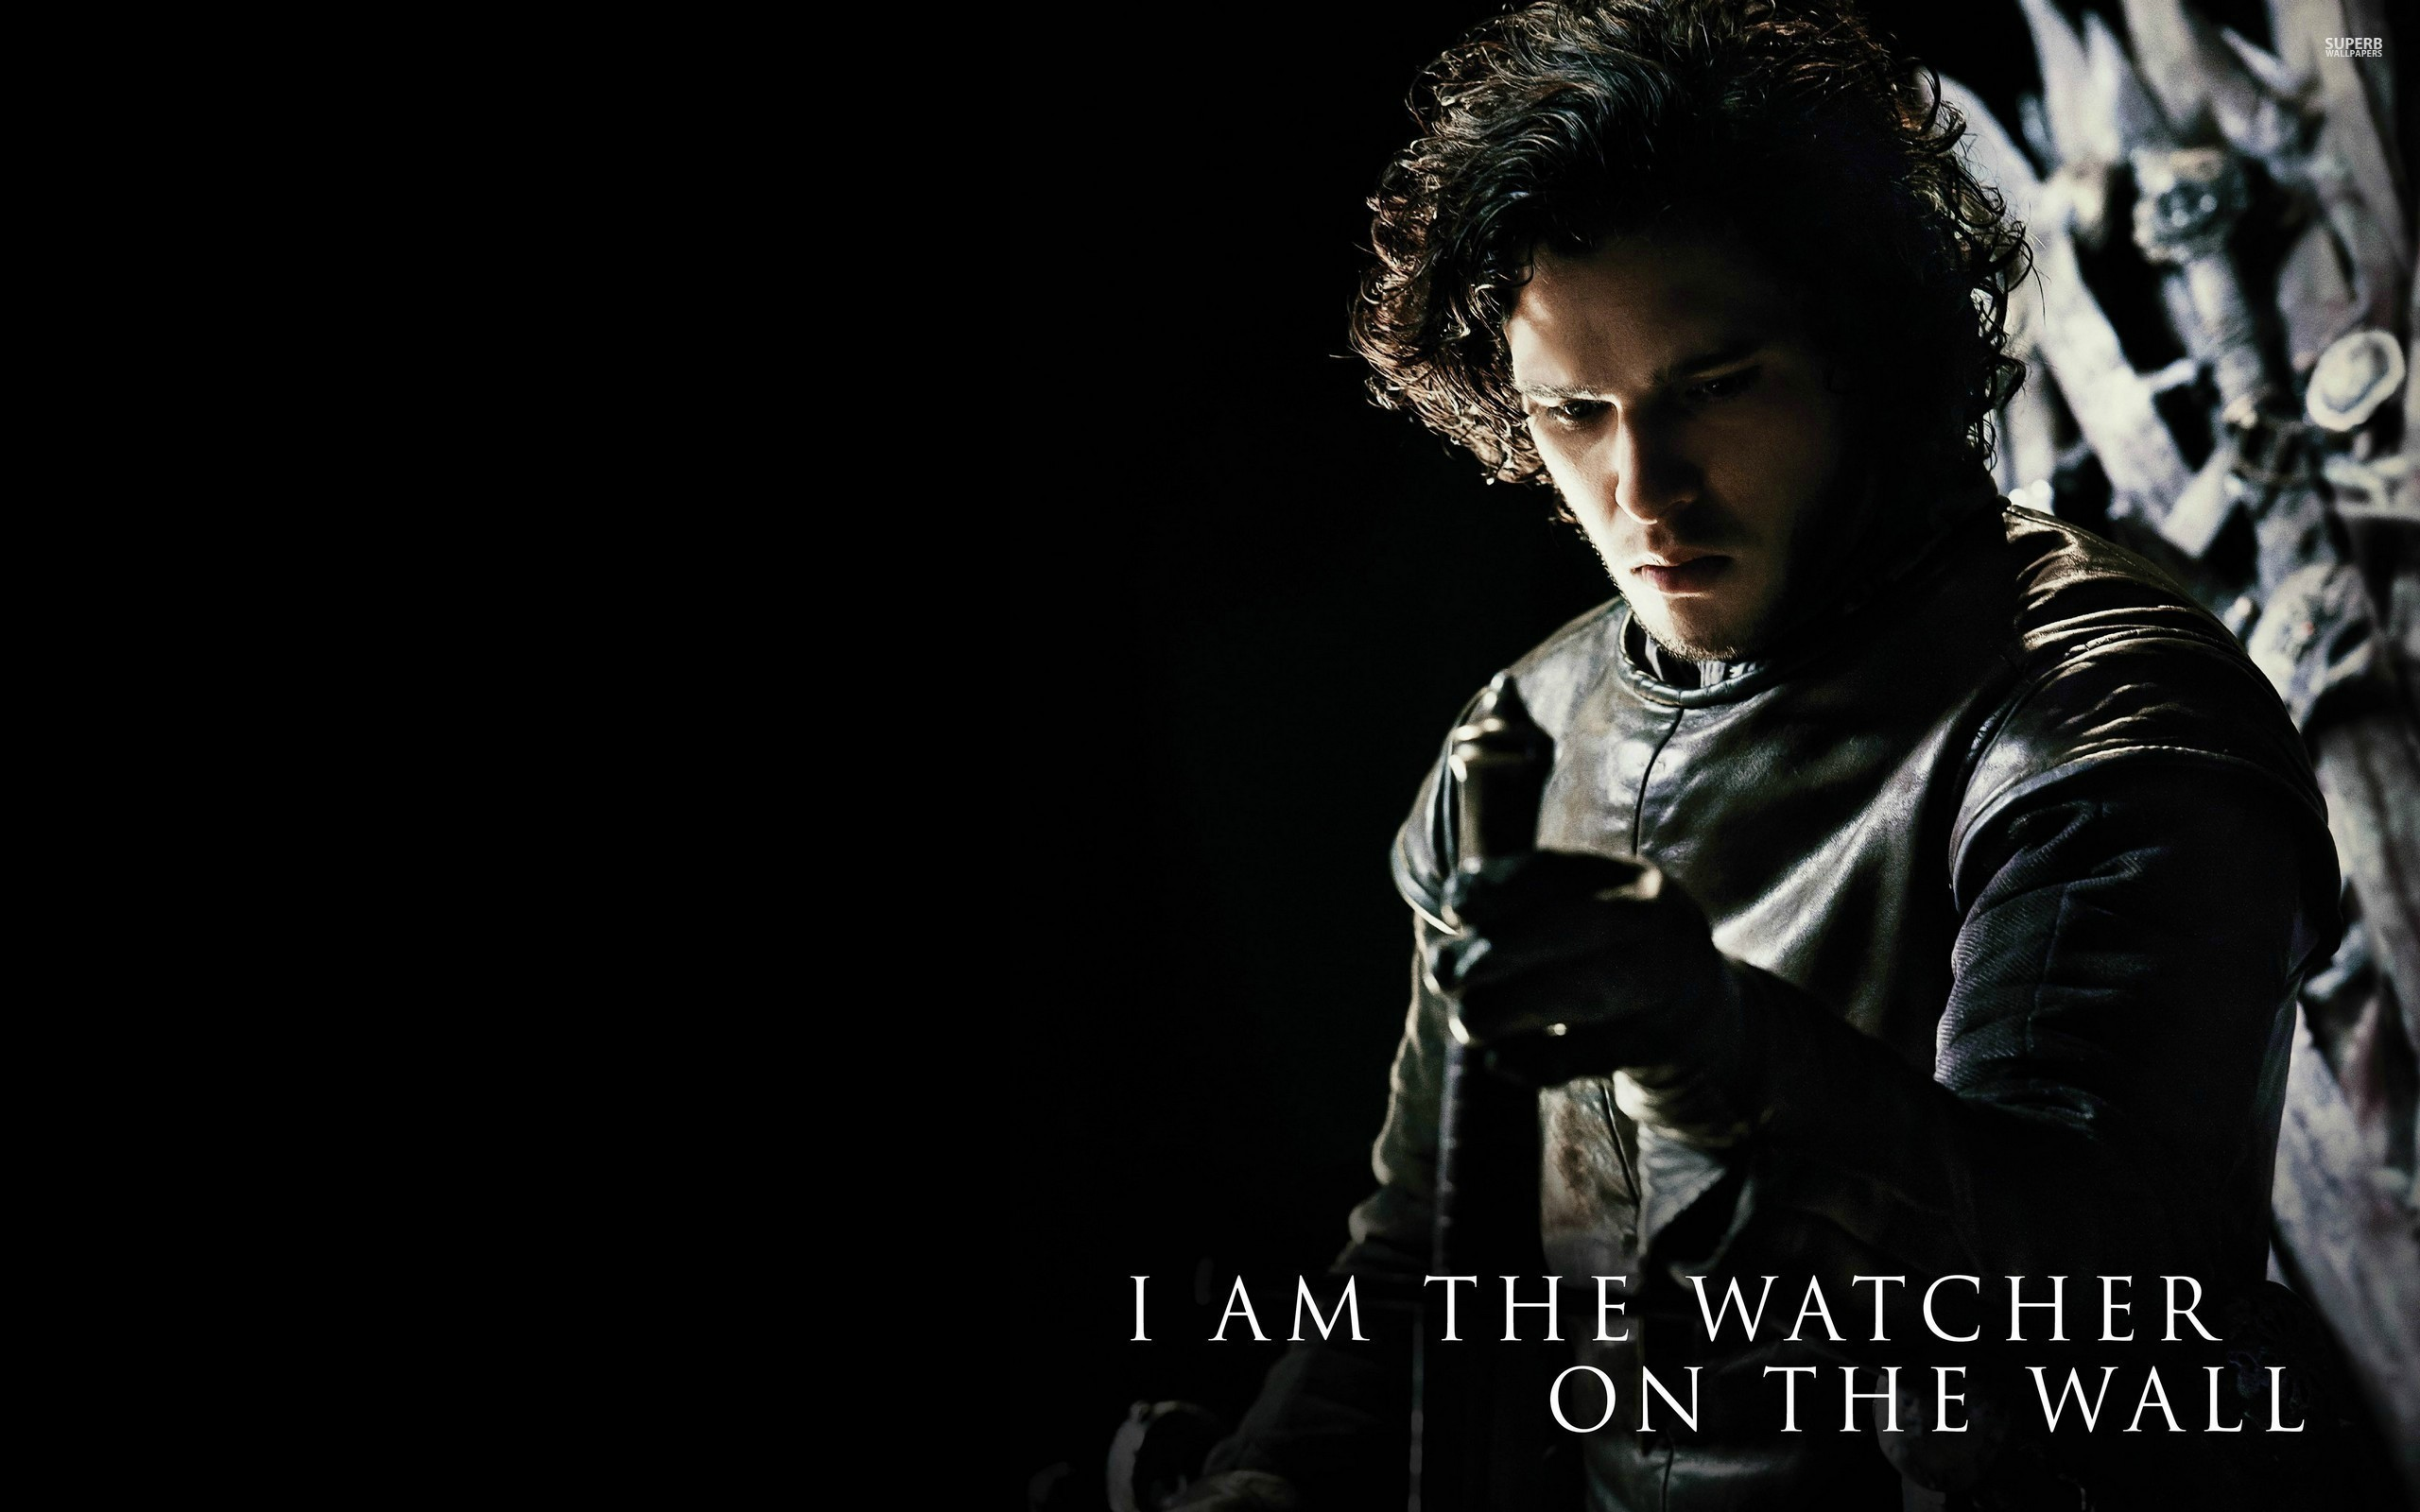 2560x1600 Game of Thrones wallpaper HD free download | Wallpapers, Backgrounds .